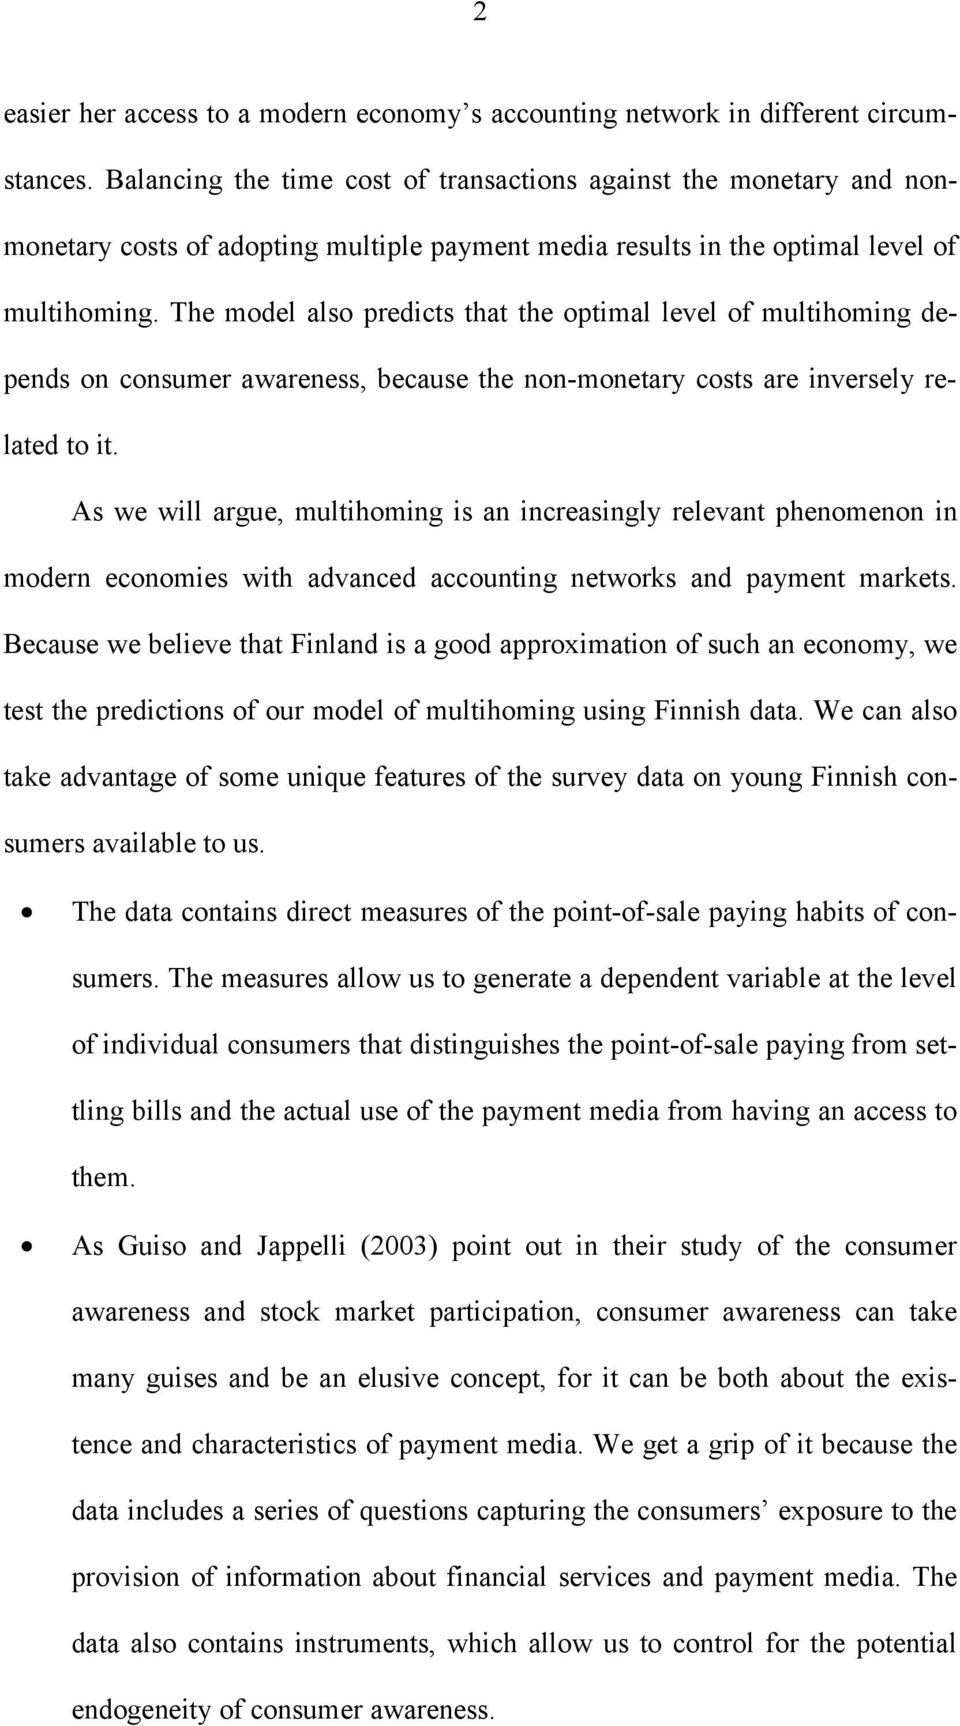 The model also predcts that the optmal level of multhomng depends on consumer awareness, because the non-monetary costs are nversely related to t.